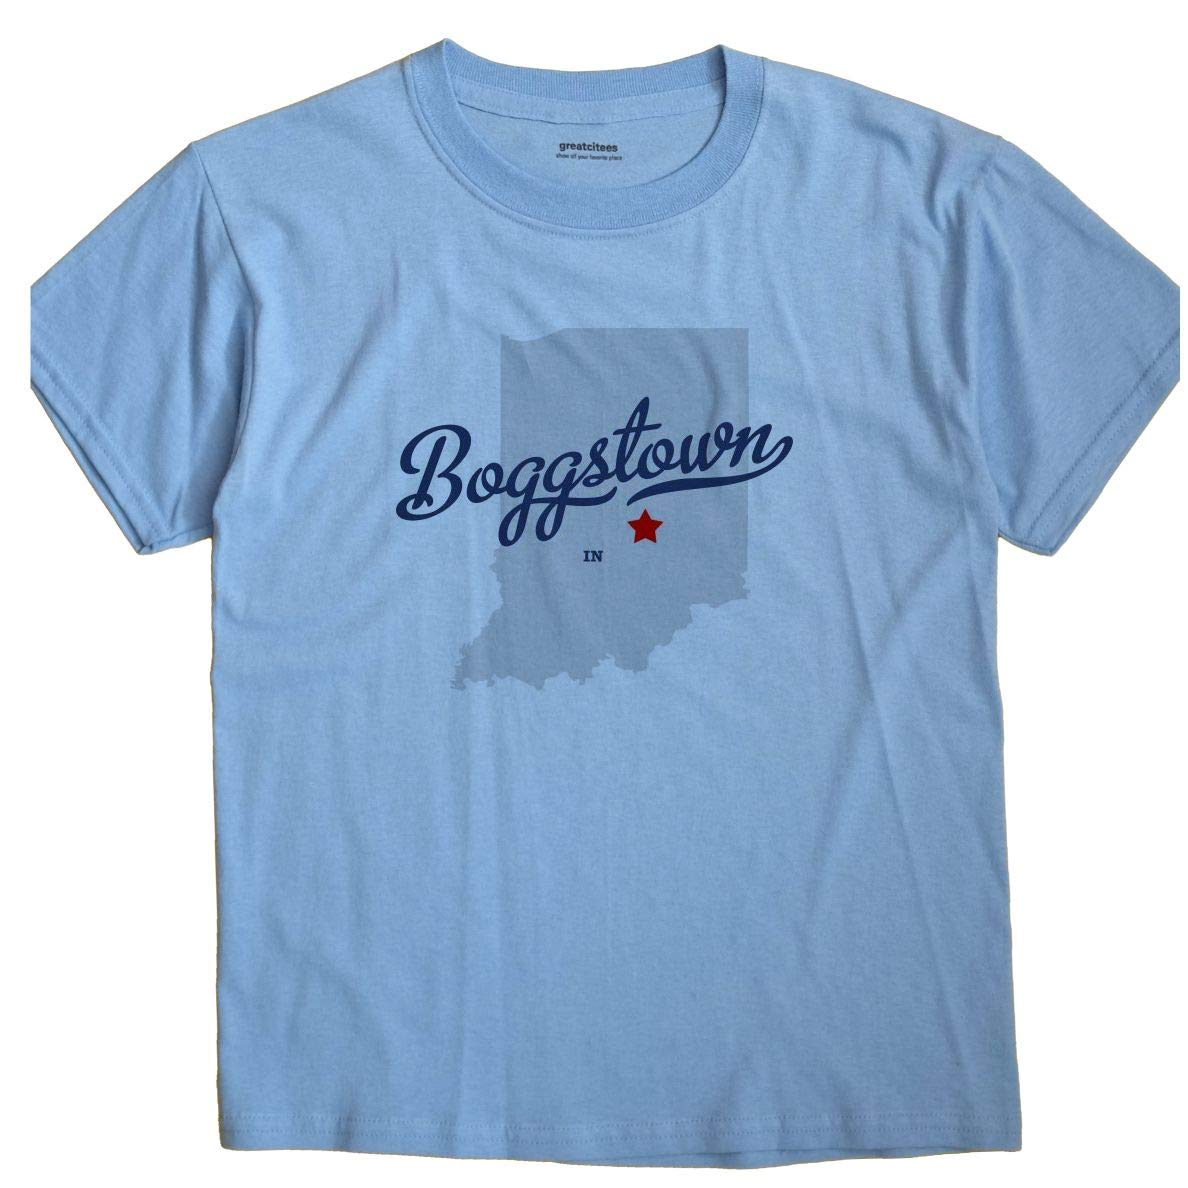 Boggstown Indiana Map.Amazon Com Greatcitees Boggstown Indiana In Map Unisex Souvenir T